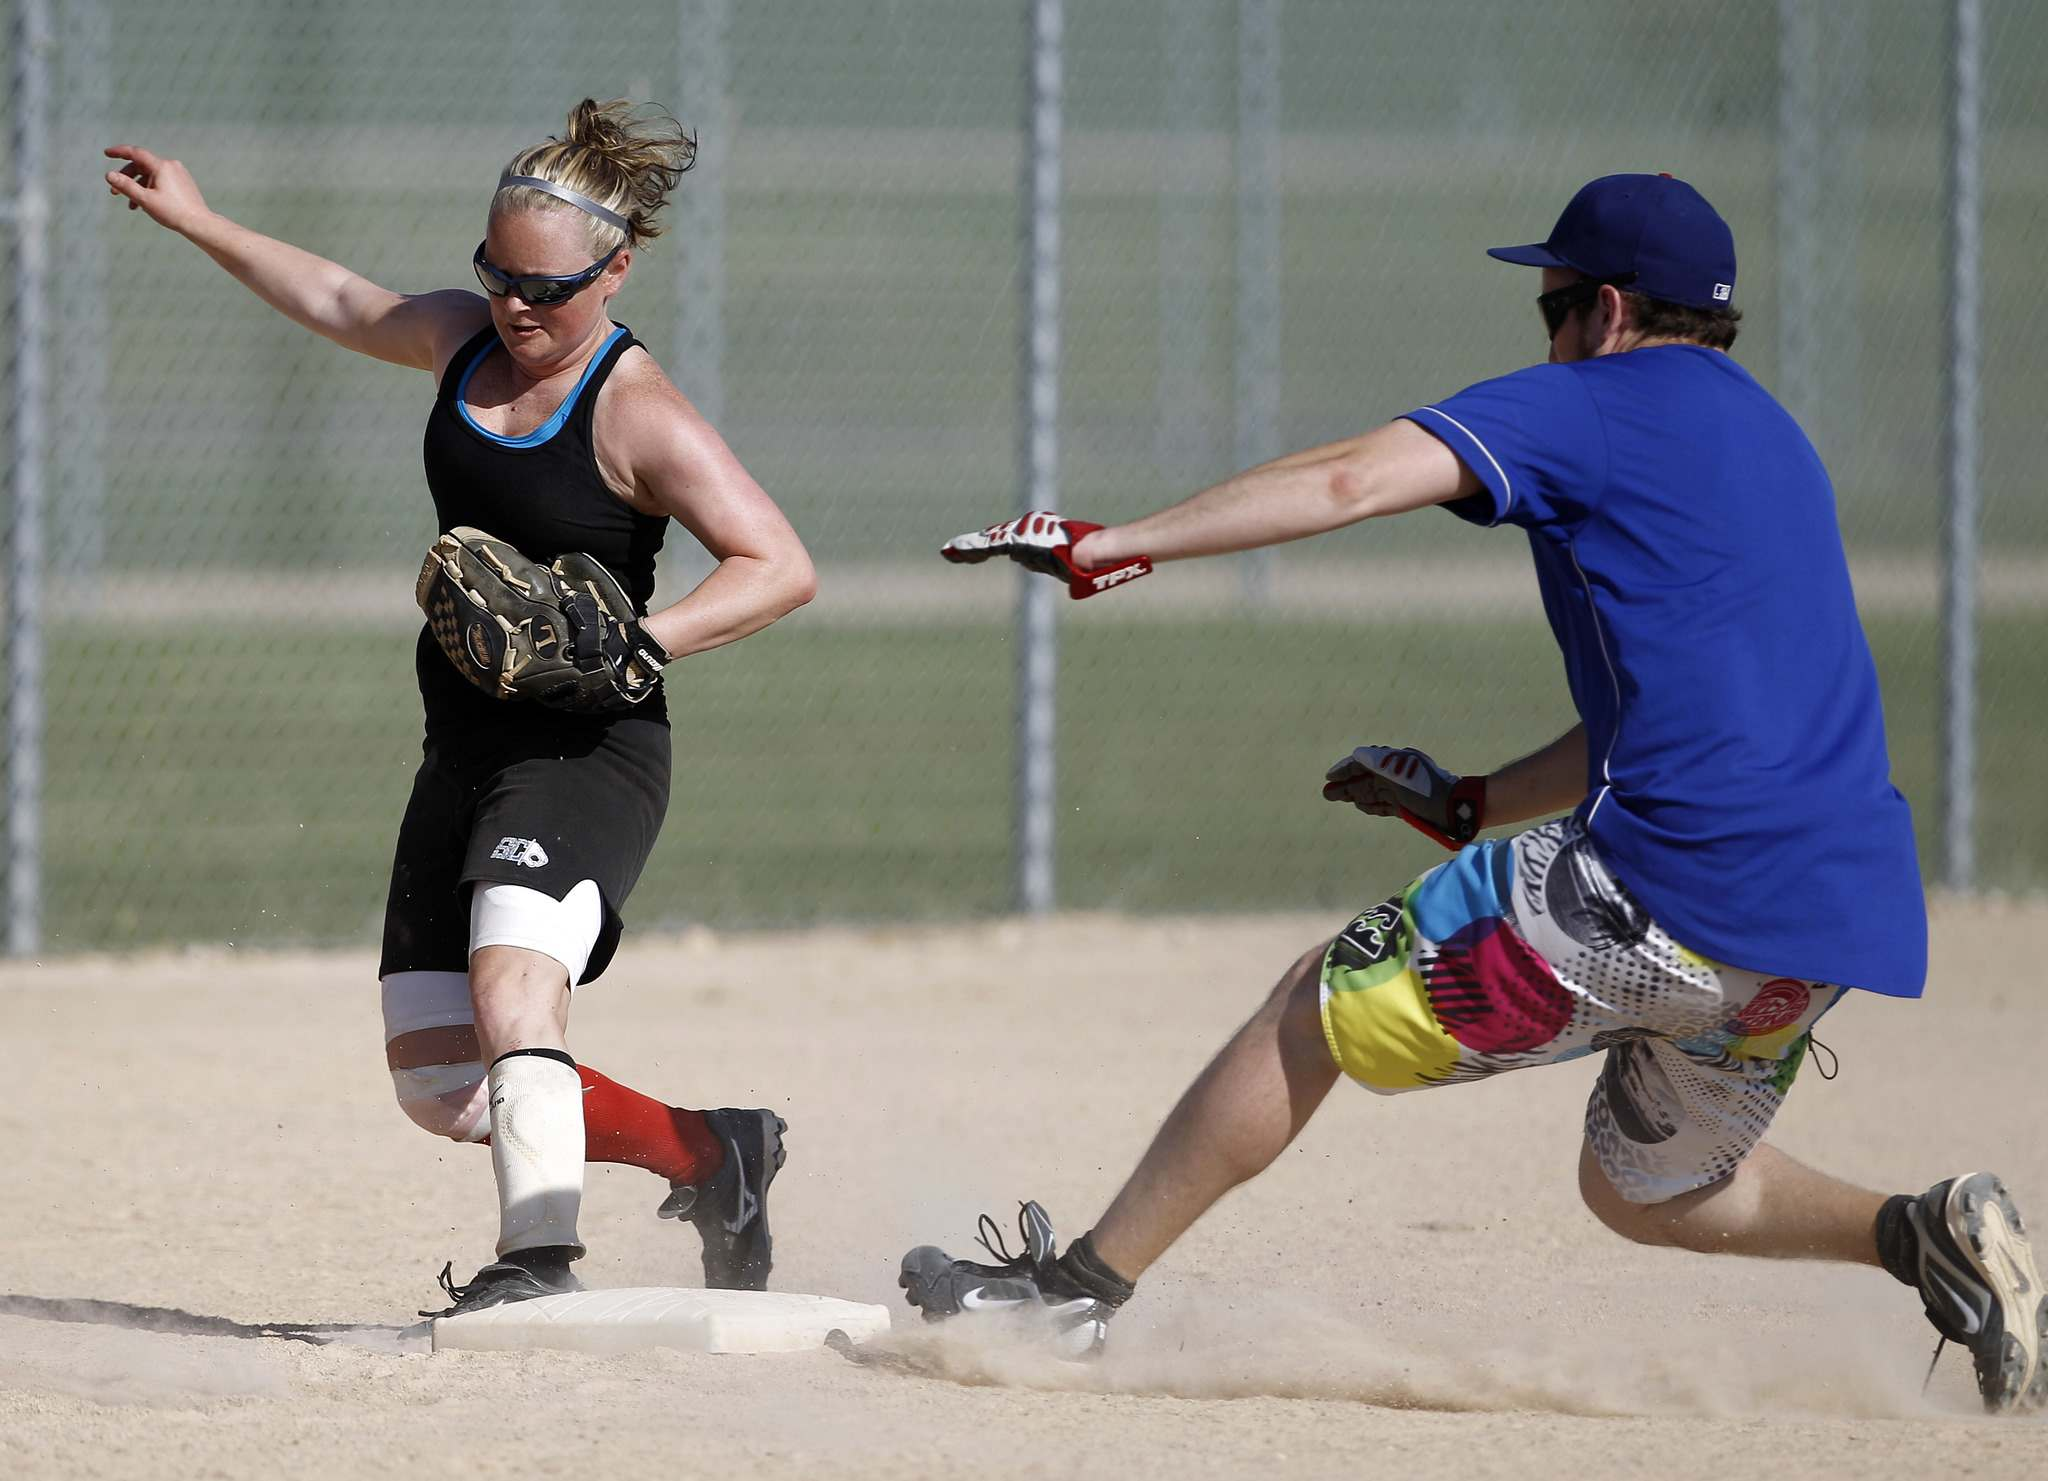 TREVOR HAGAN / WINNIPEG FREE PRESS FILES</p></p><p>Even with more positive cases and variants now in play, registration to play slo-pitch has gone up this summer.</p>